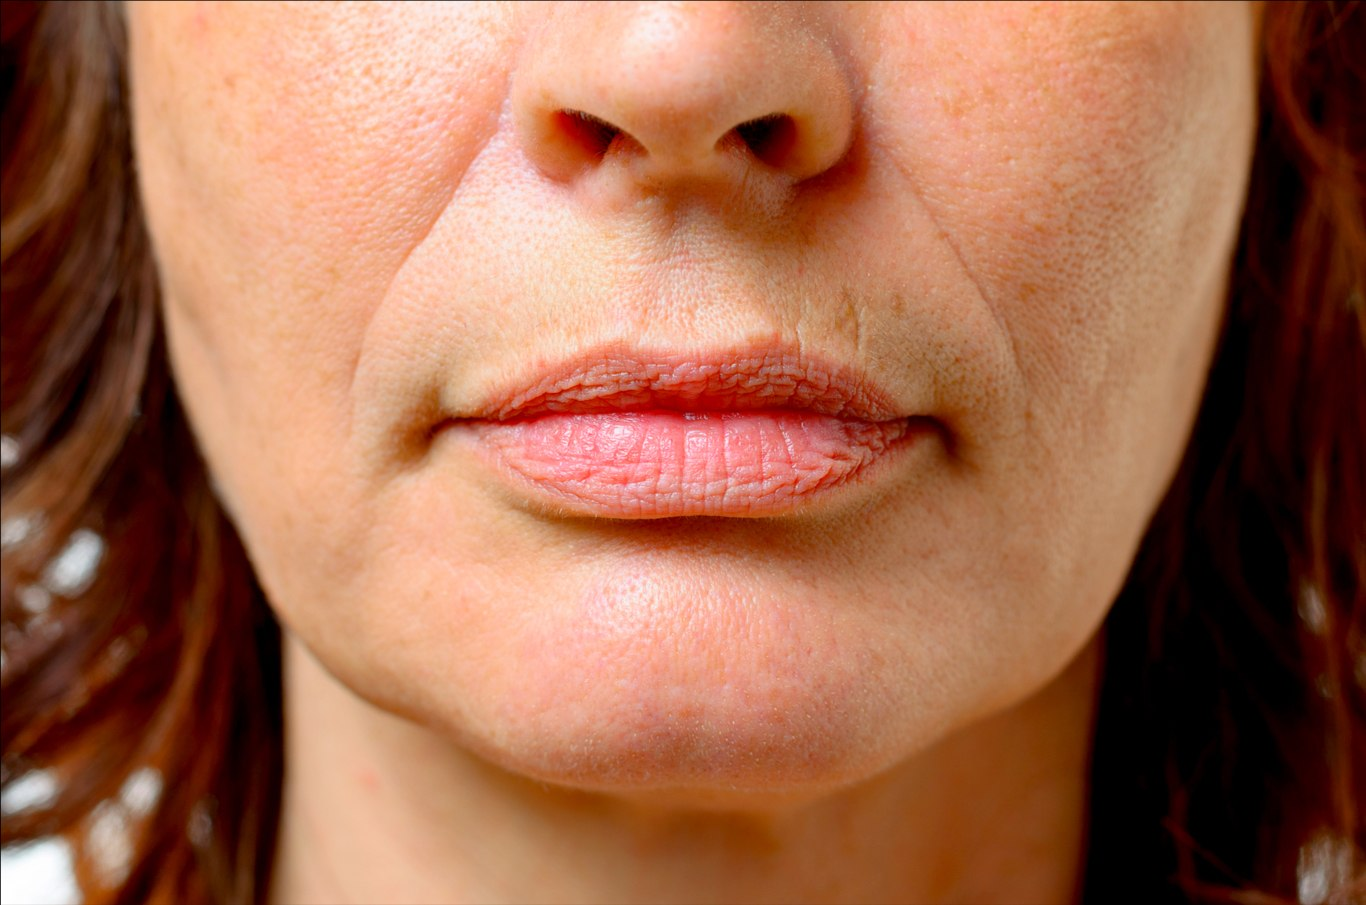 How to Get Rid of Wrinkles Around Mouth and Chin? Let's ...